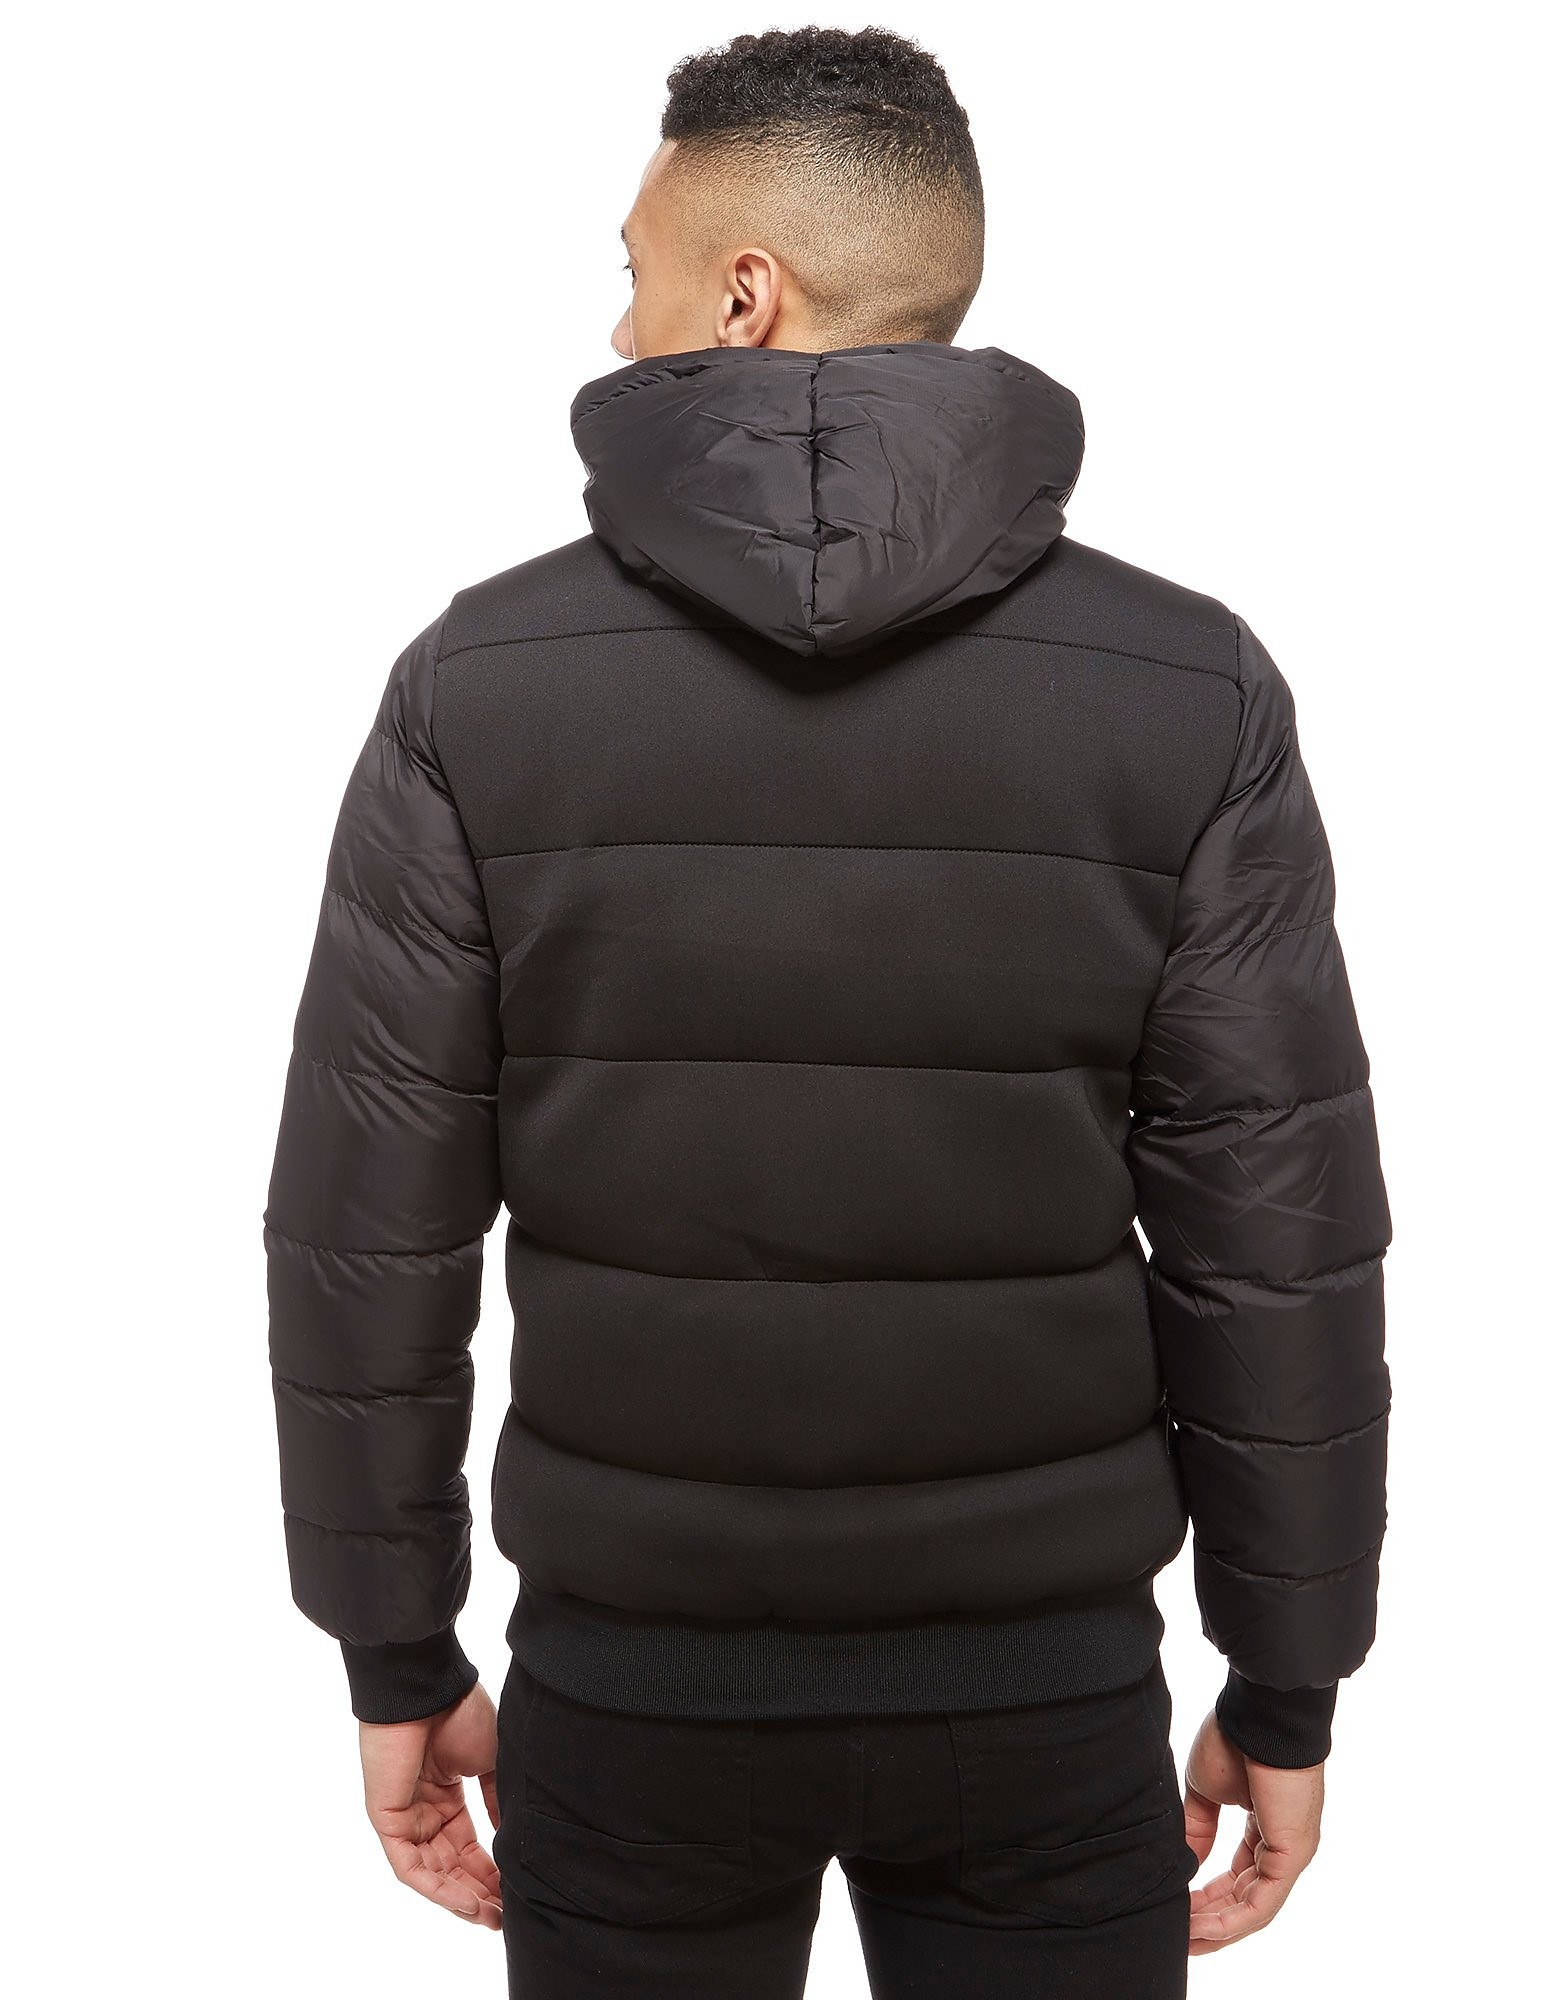 Supply & Demand Lair Jacket